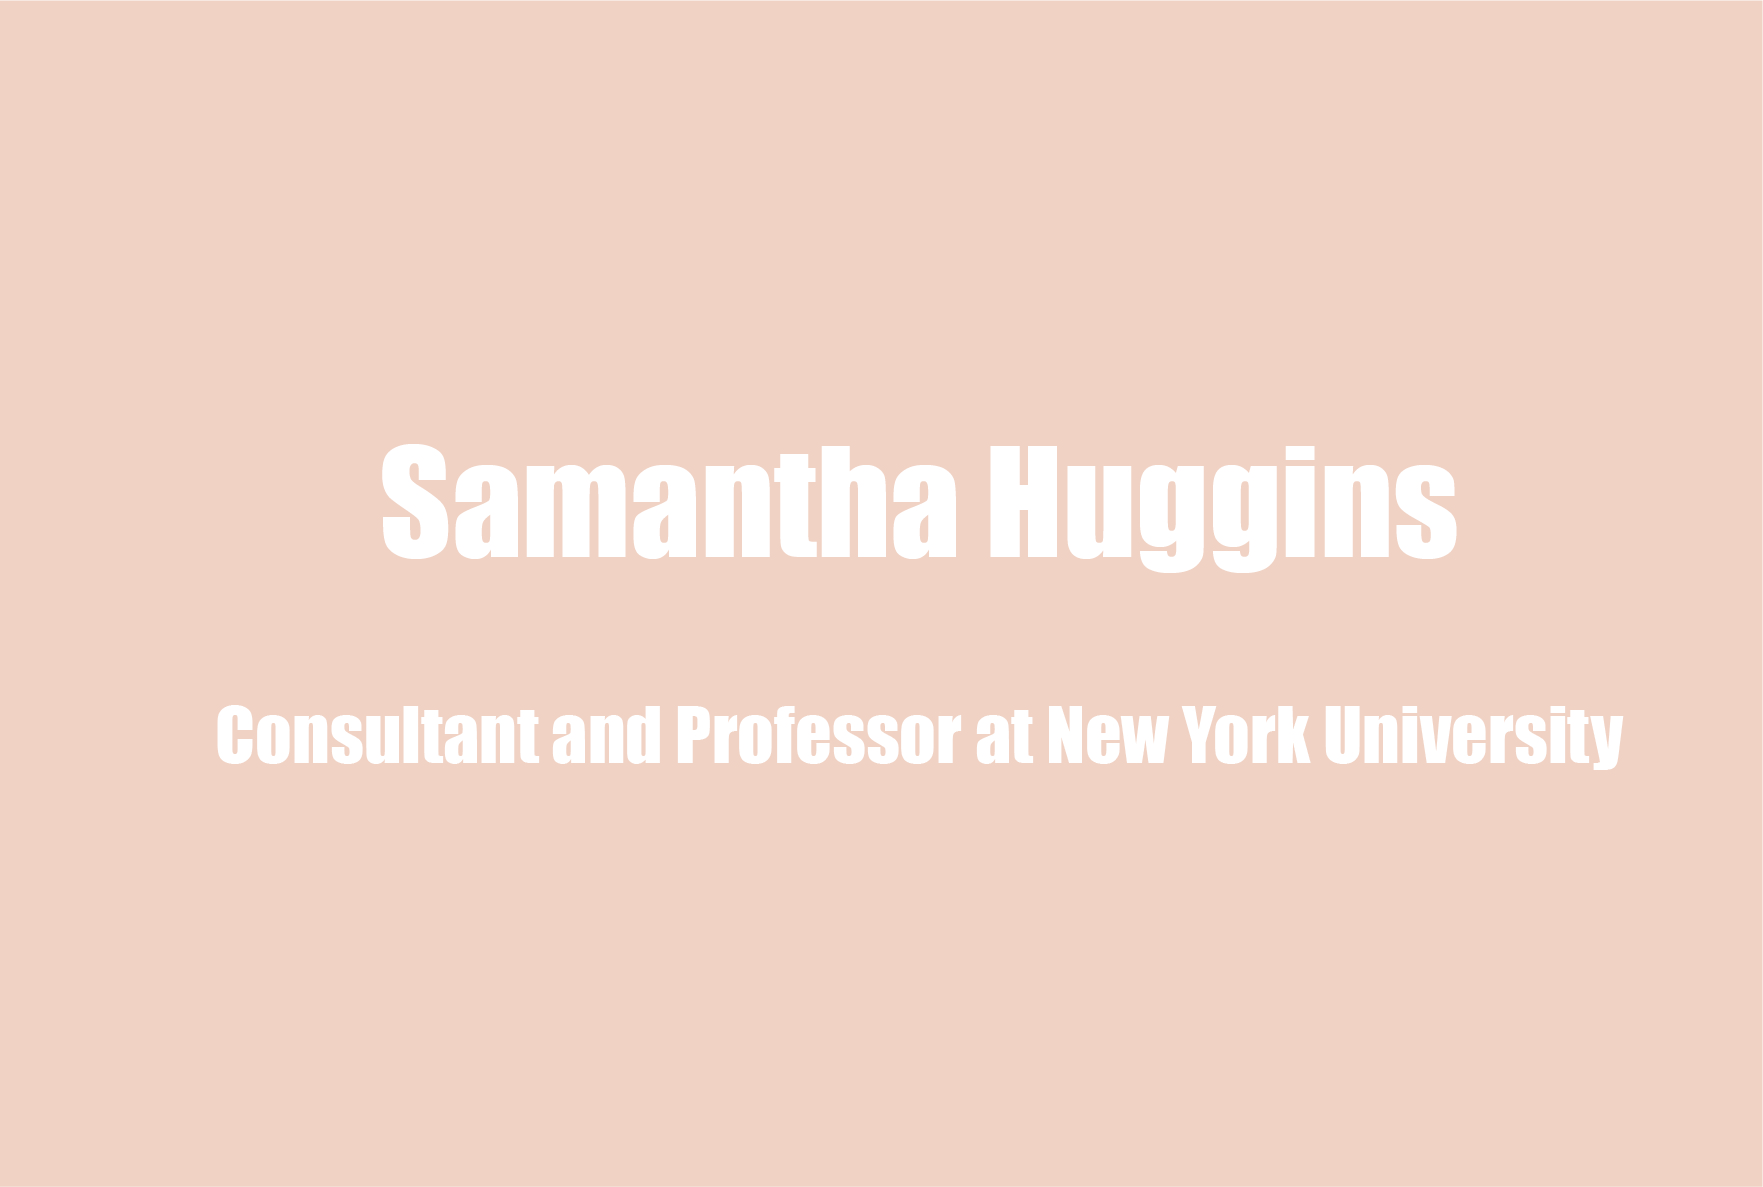 Samantha Huggins on Her Wellness Regimen, Openness Versus Vulnerability, and Mental Health in Schools